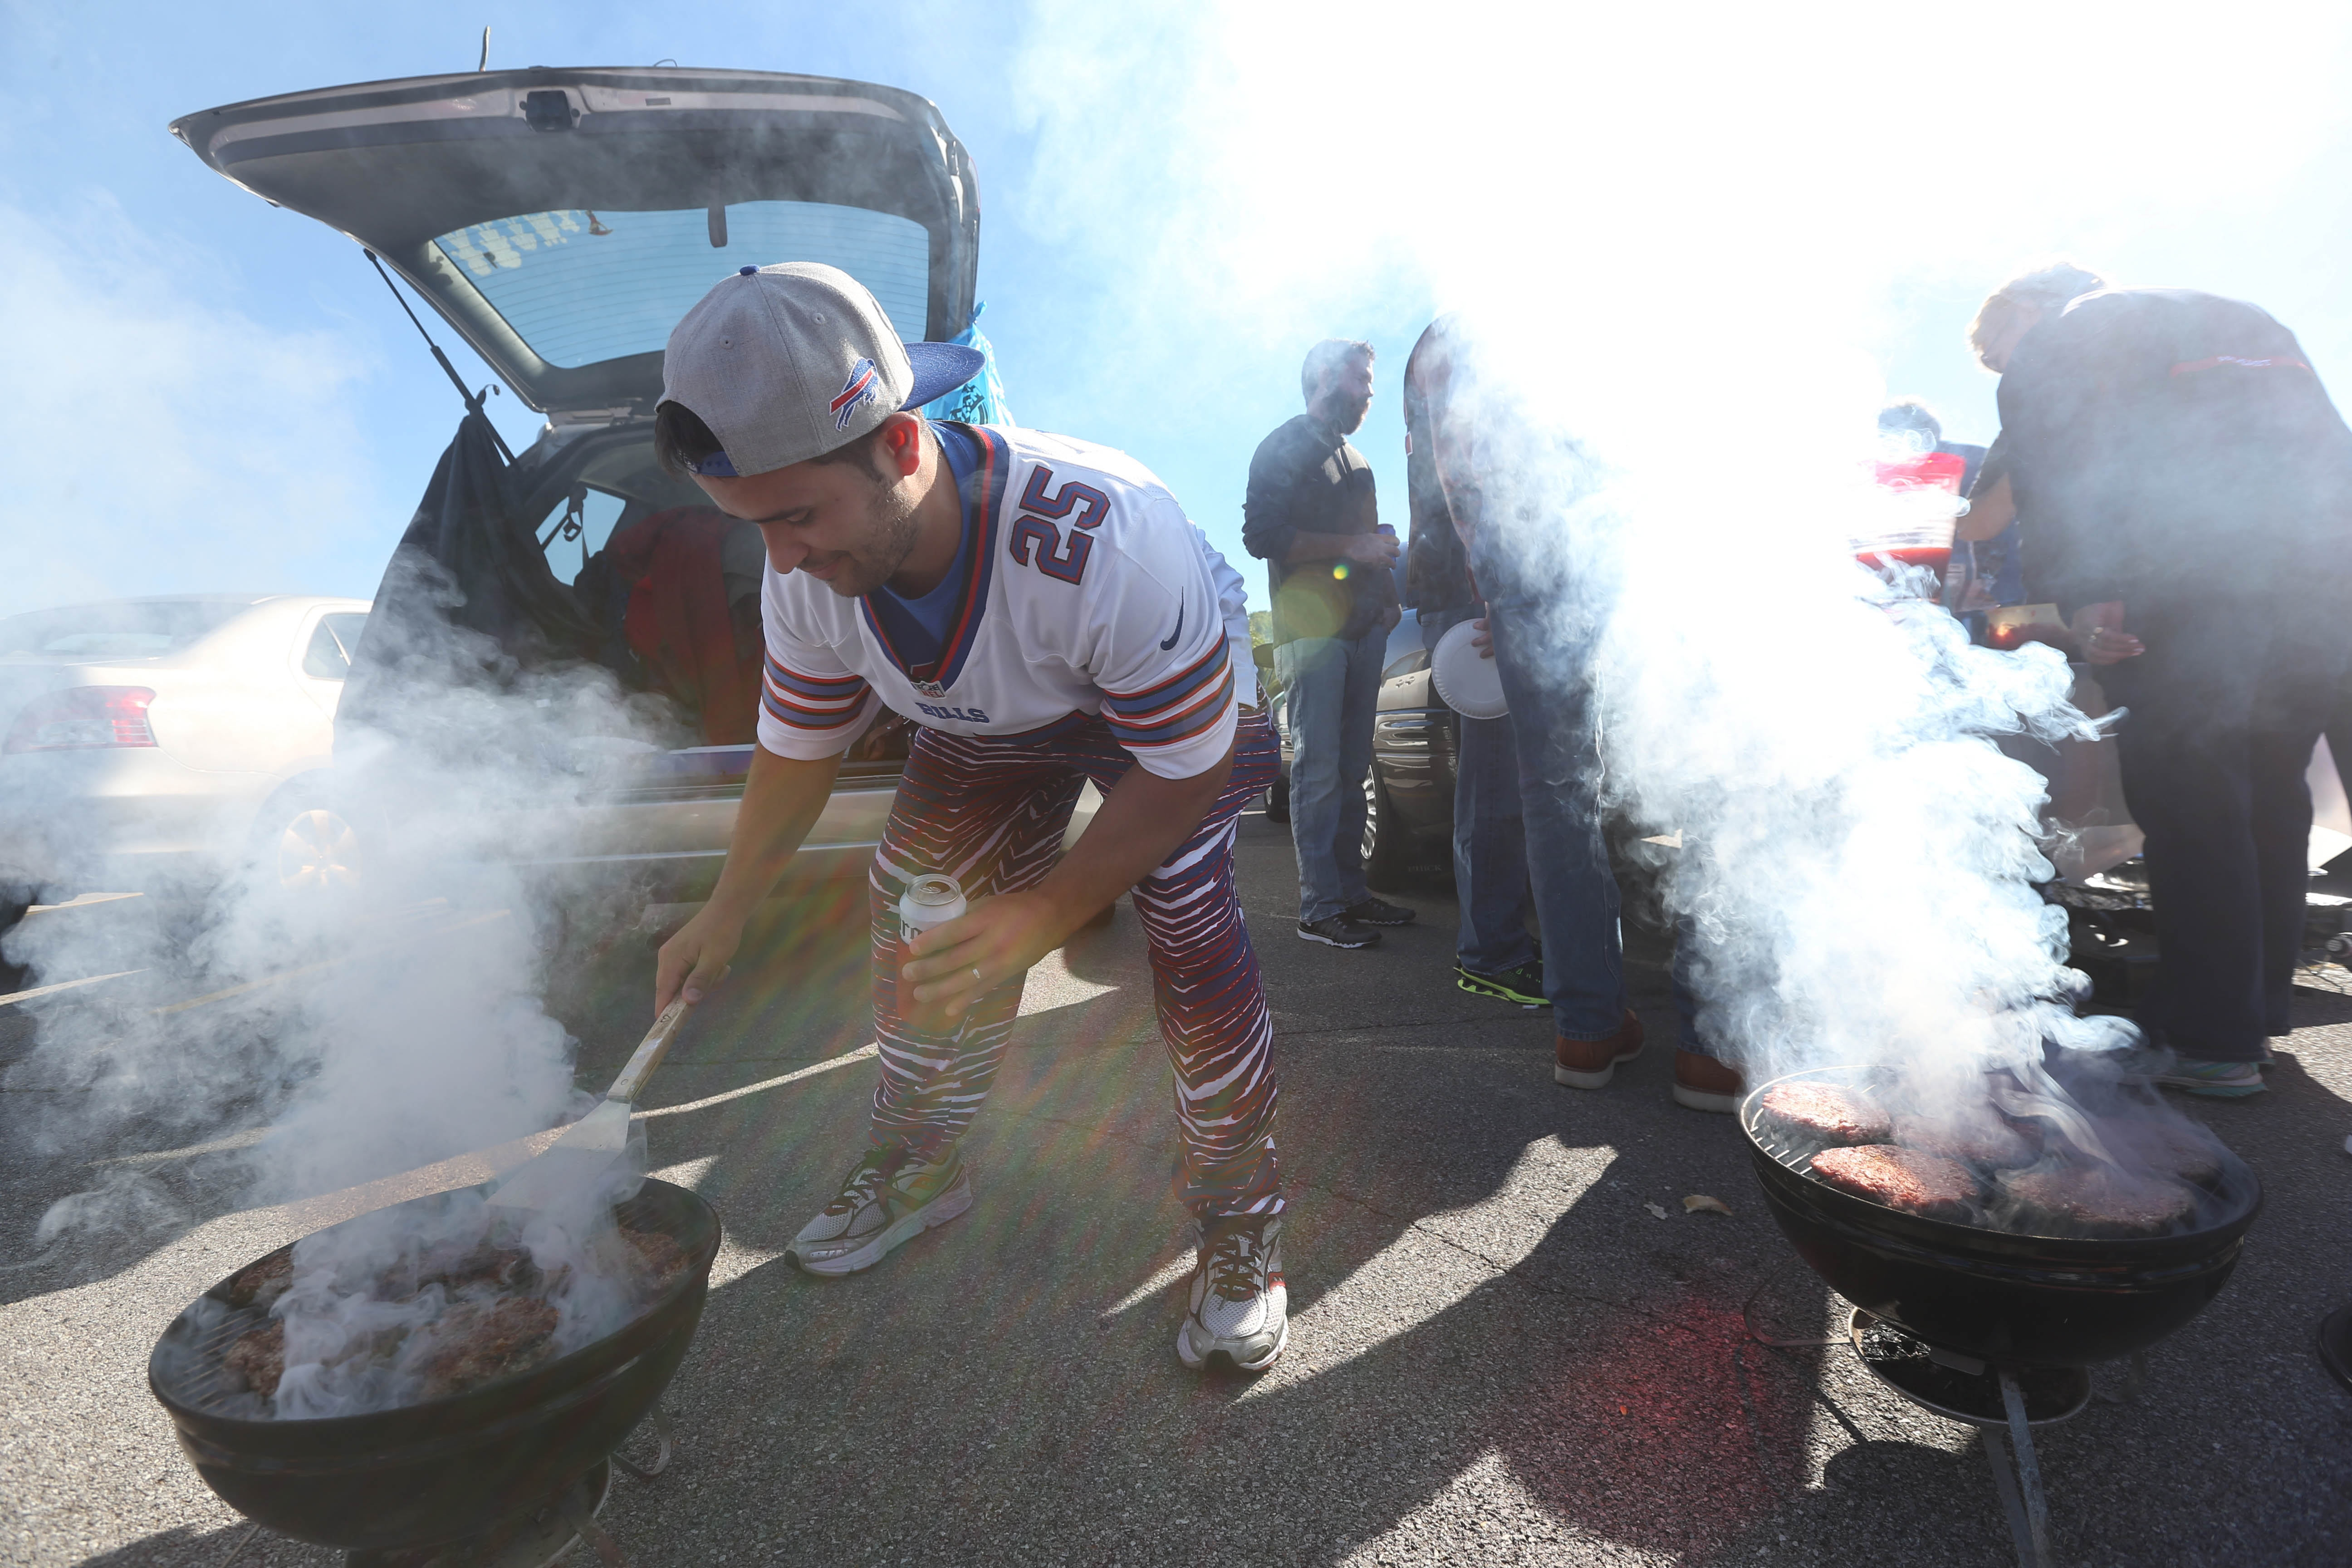 Tailgating tradition: Scenes from last week's festivities include 14-year-old Jacob Lawson and his funky hat, Jeff Manca working two grills, Petey Robinson with hot eats just out of the smoker, and Lori Pafk heating up a big pot of chili.